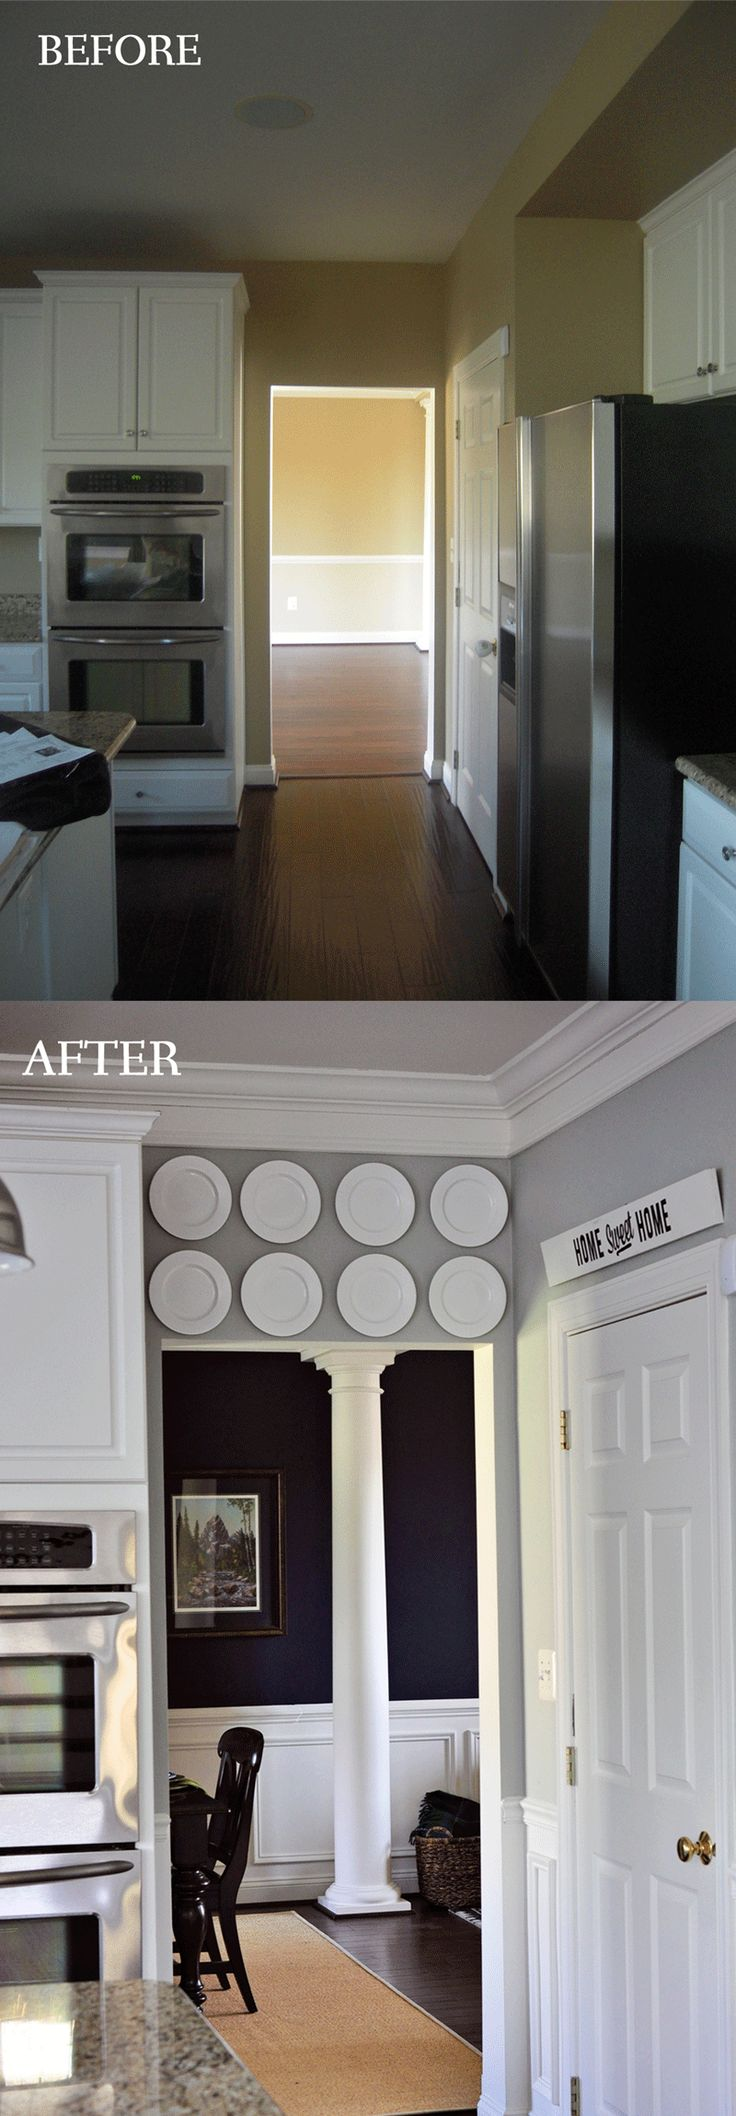 Molding amp trim find baseboard and crown molding designs online - Crown Molding Makes Such A Difference And This Woman Did Everything Herself After Teaching